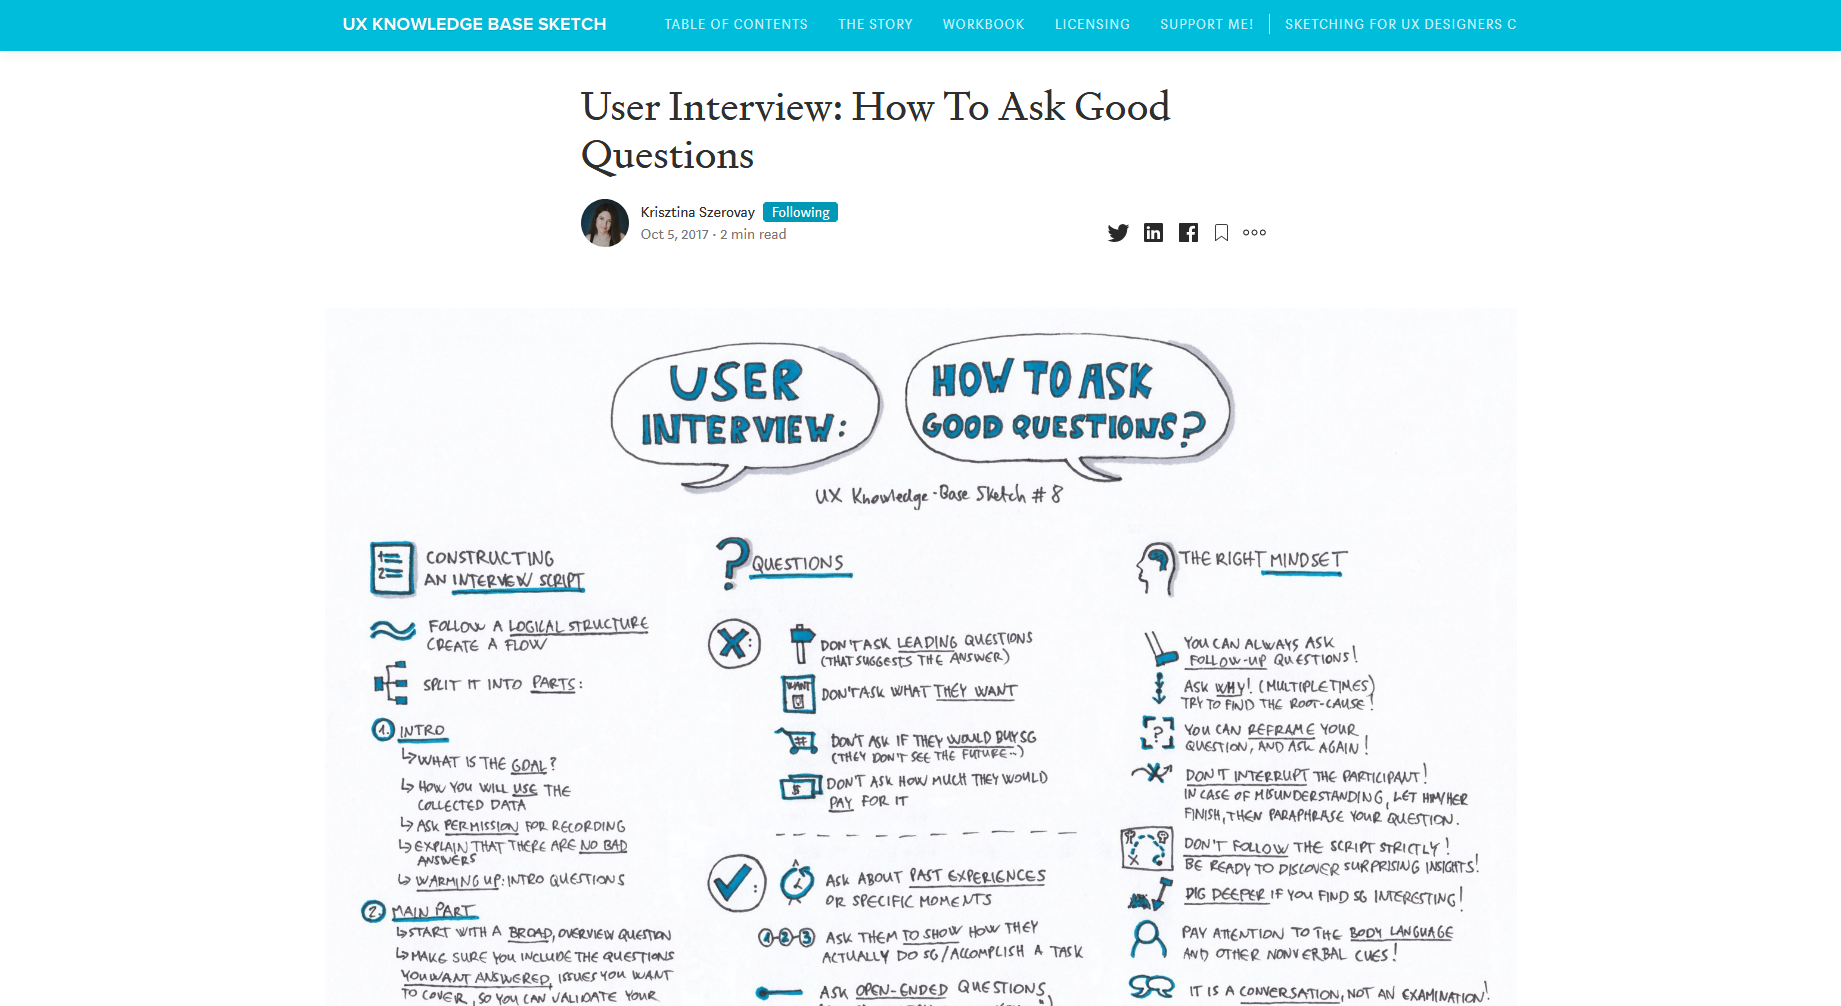 User Interview: How To Ask Good Questions — UX Knowledge Base Sketches